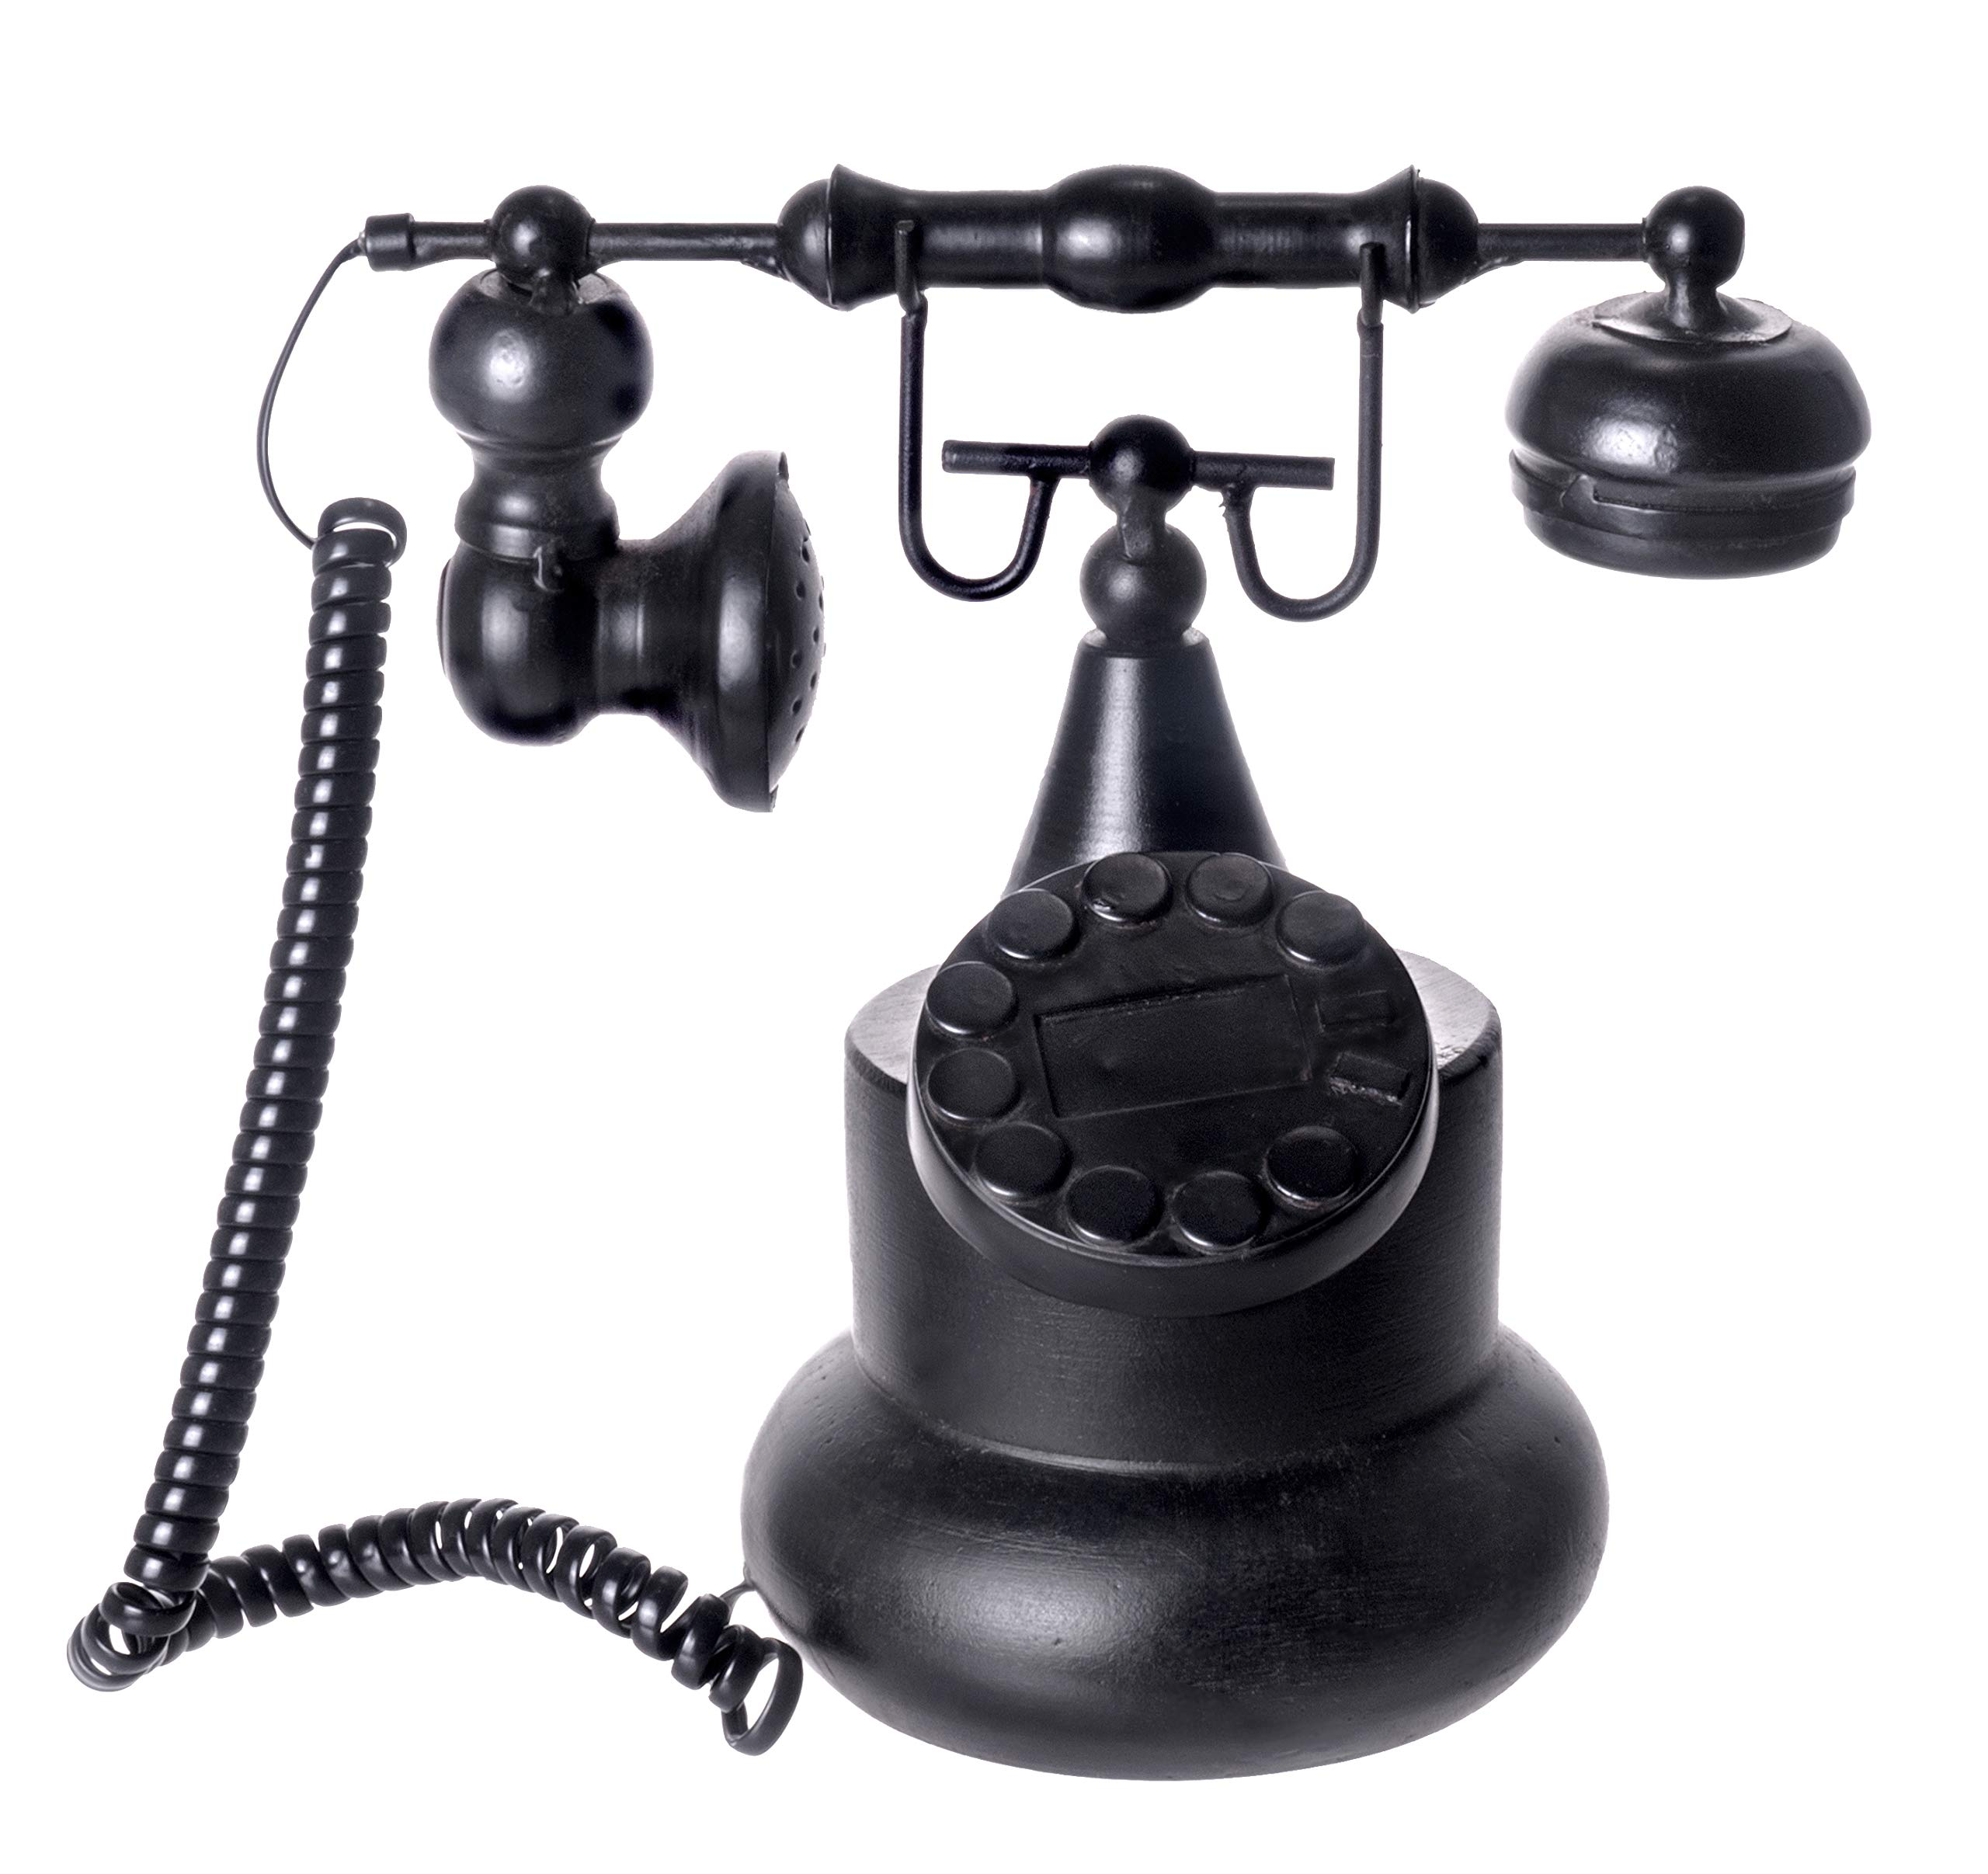 Red Co. Old Fashioned Vintage Front Desk Phone - Antique Home/Cafe Dialing Telephone Decoration by Red Co.